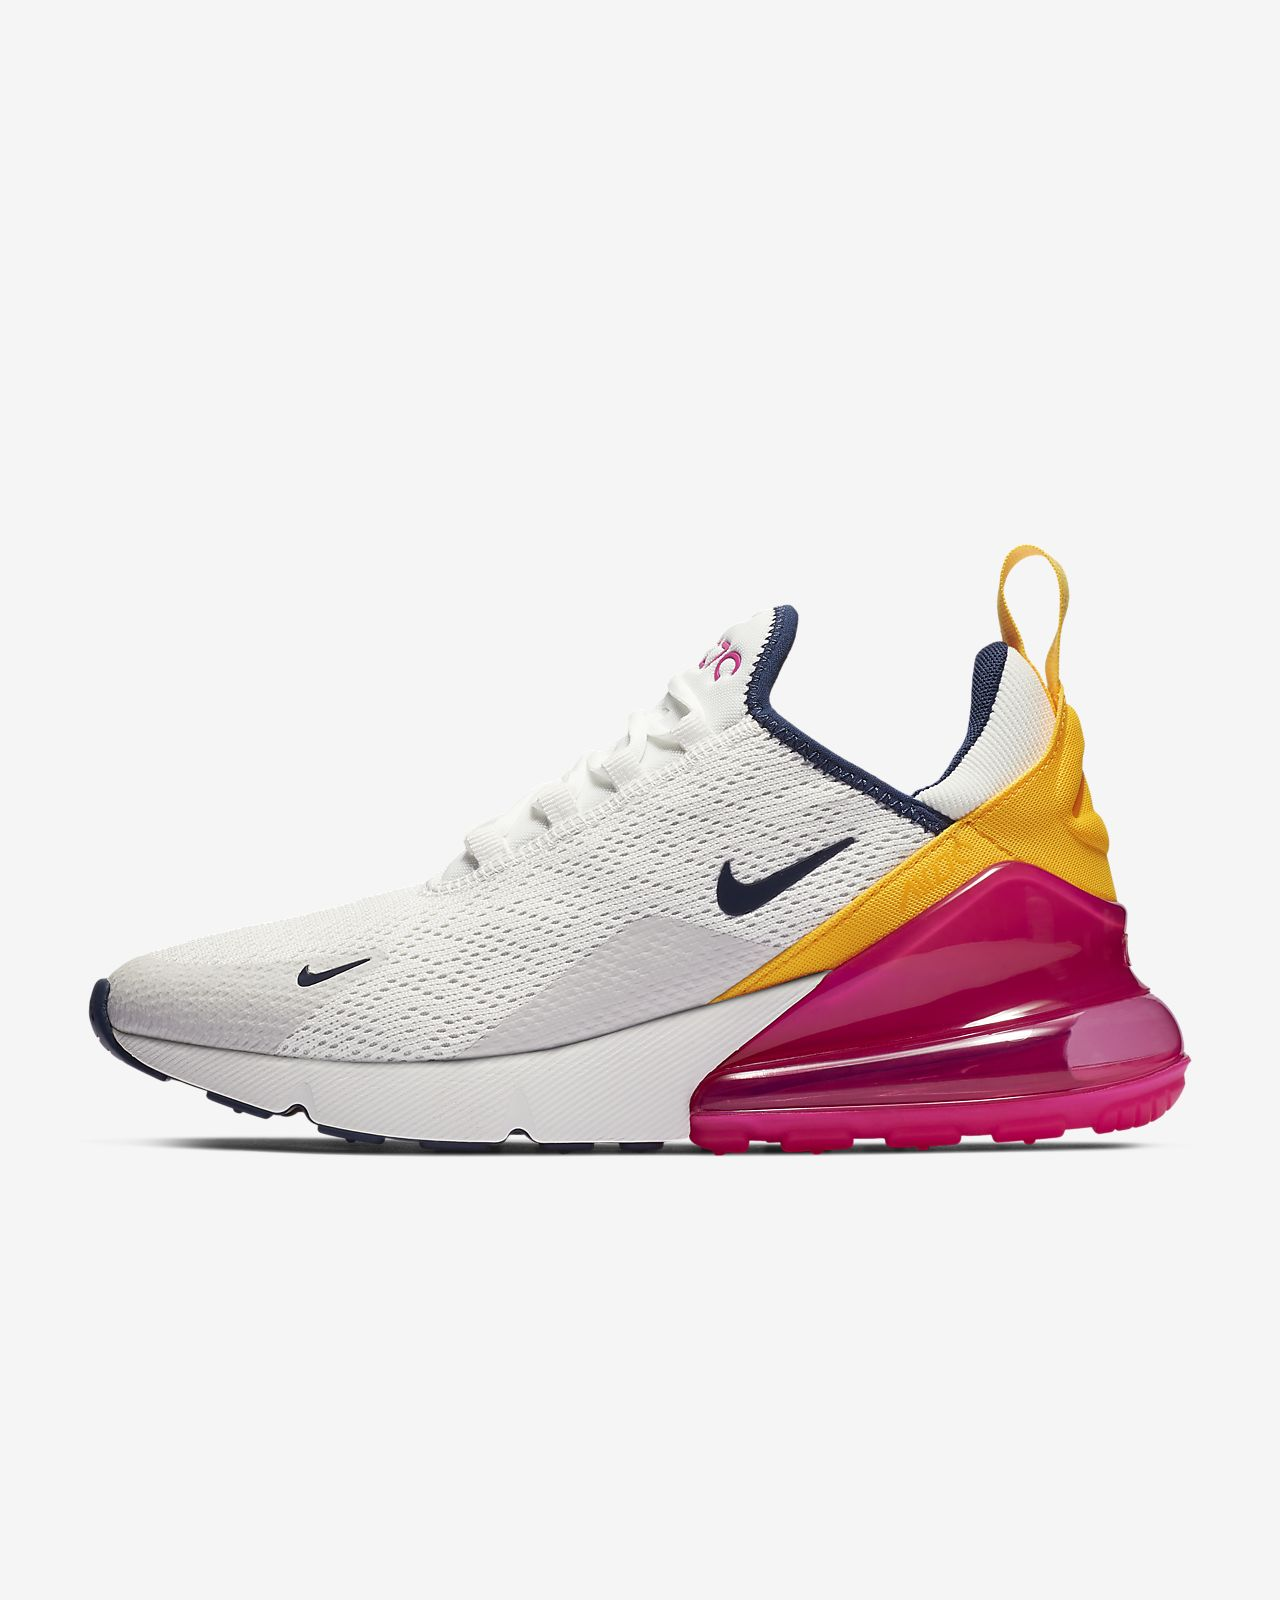 quality design bb79a 3b816 Women s Shoe. Nike Air Max 270 Premium